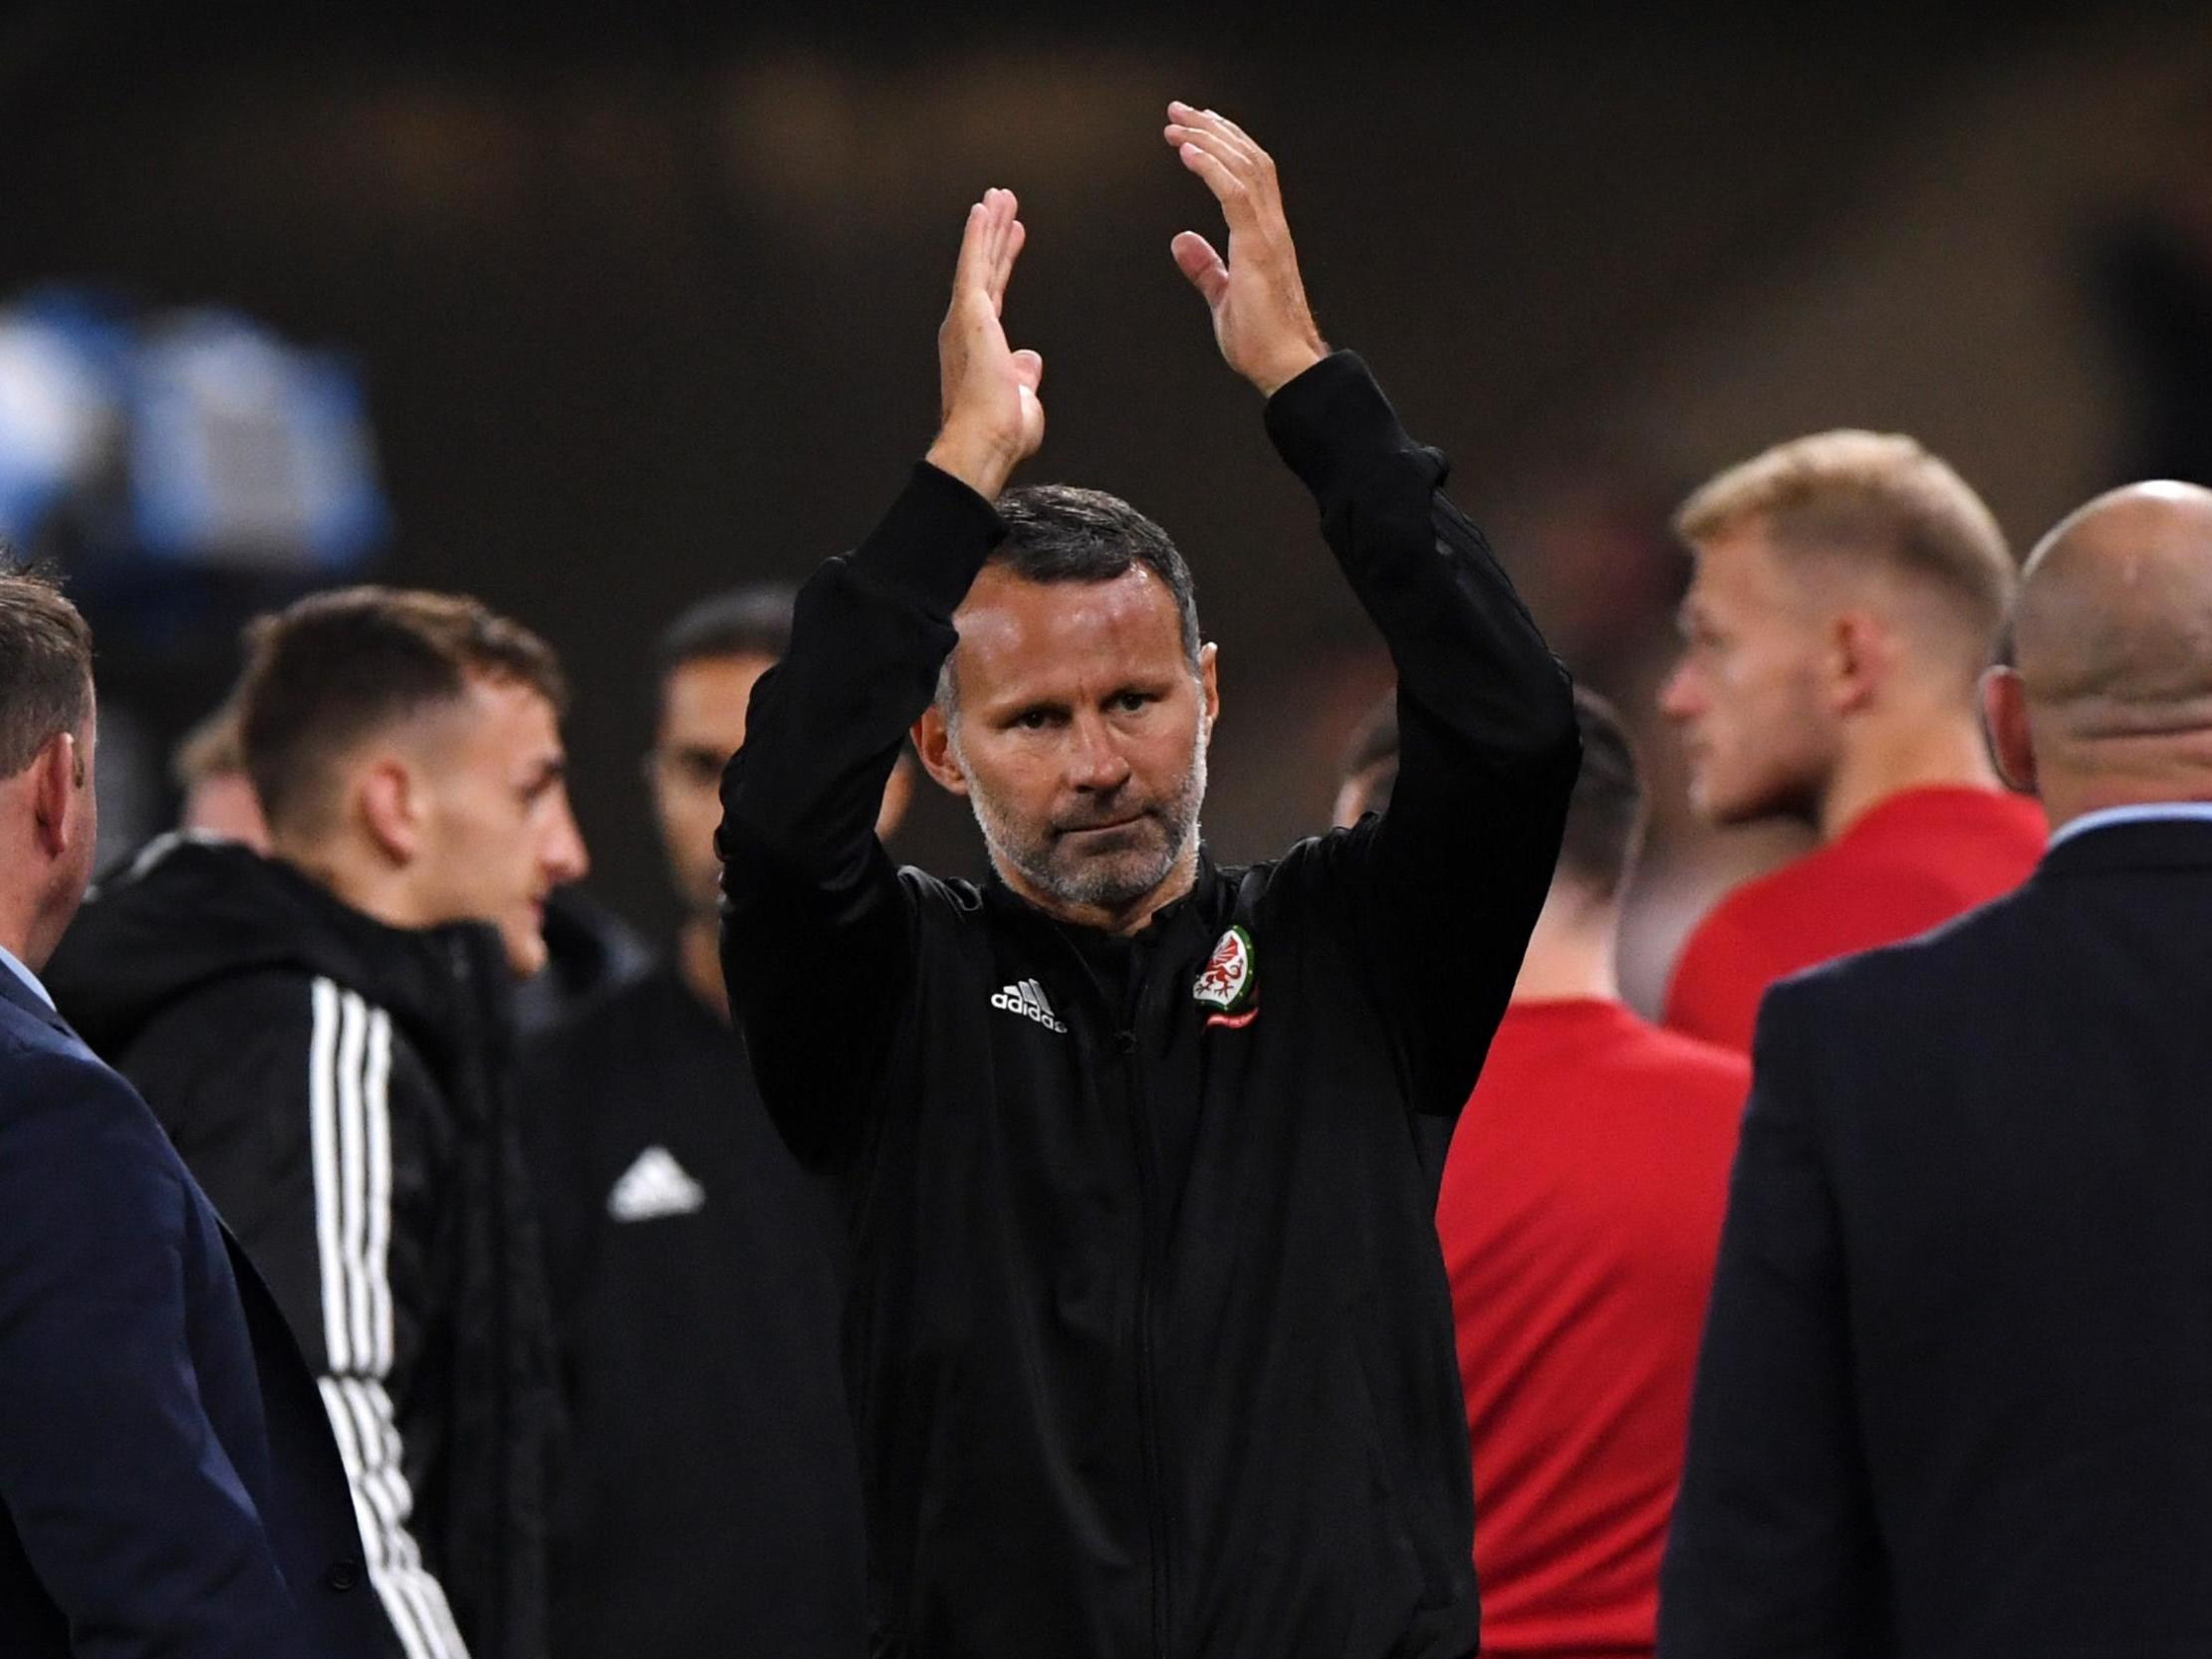 Ryan Giggs' new generation shows the future of Welsh football is bright